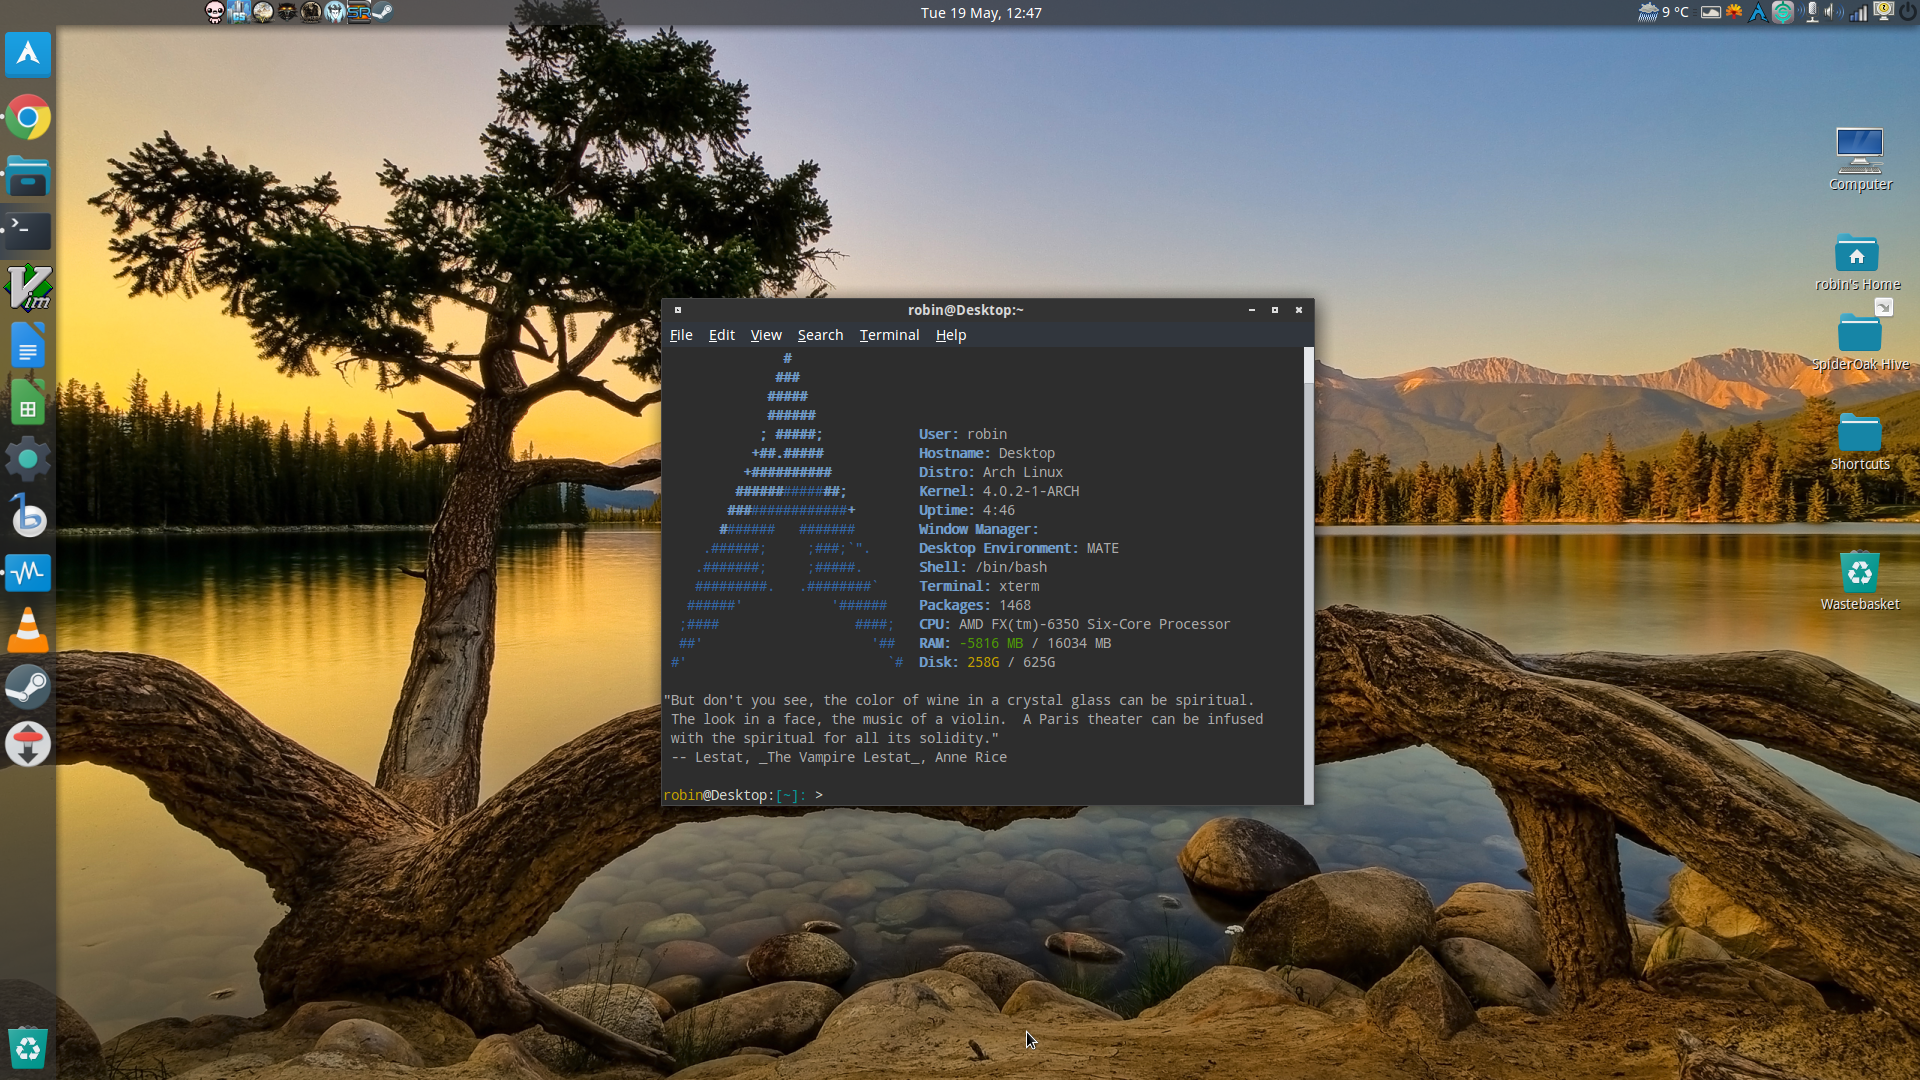 Arch screenshot